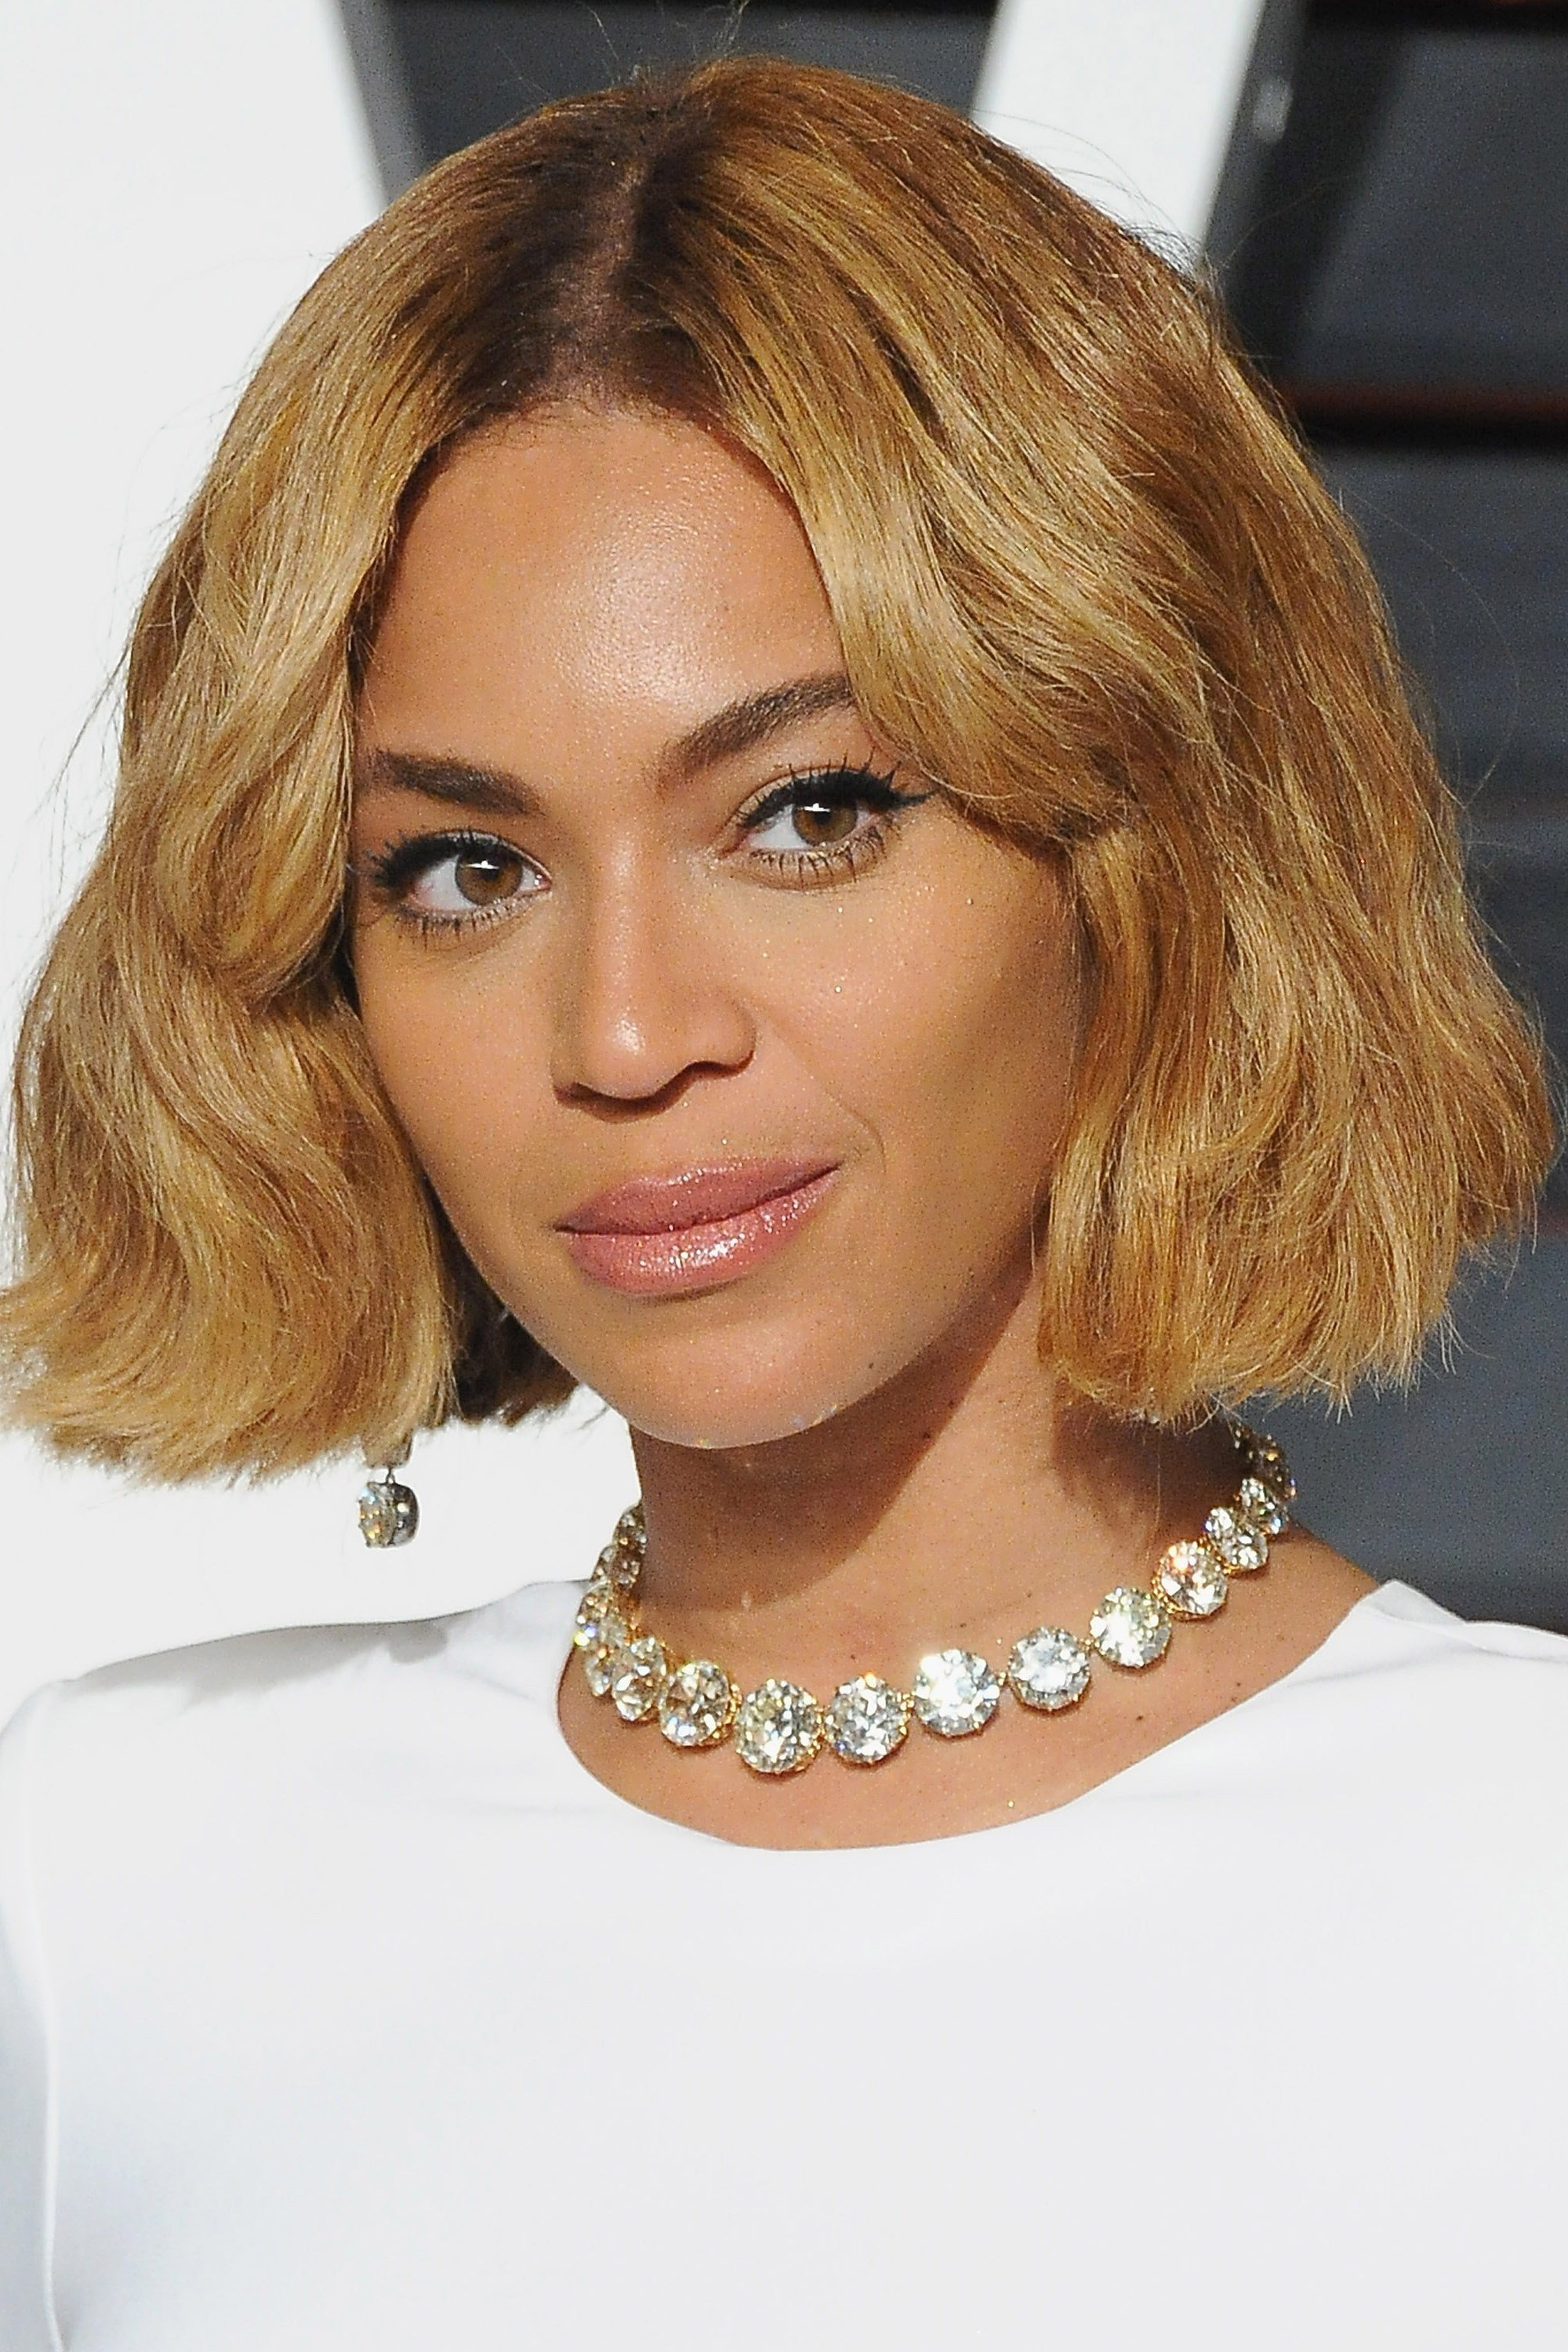 The Best 10 Short Hairstyles And Haircuts For 2016 How To Style Pictures